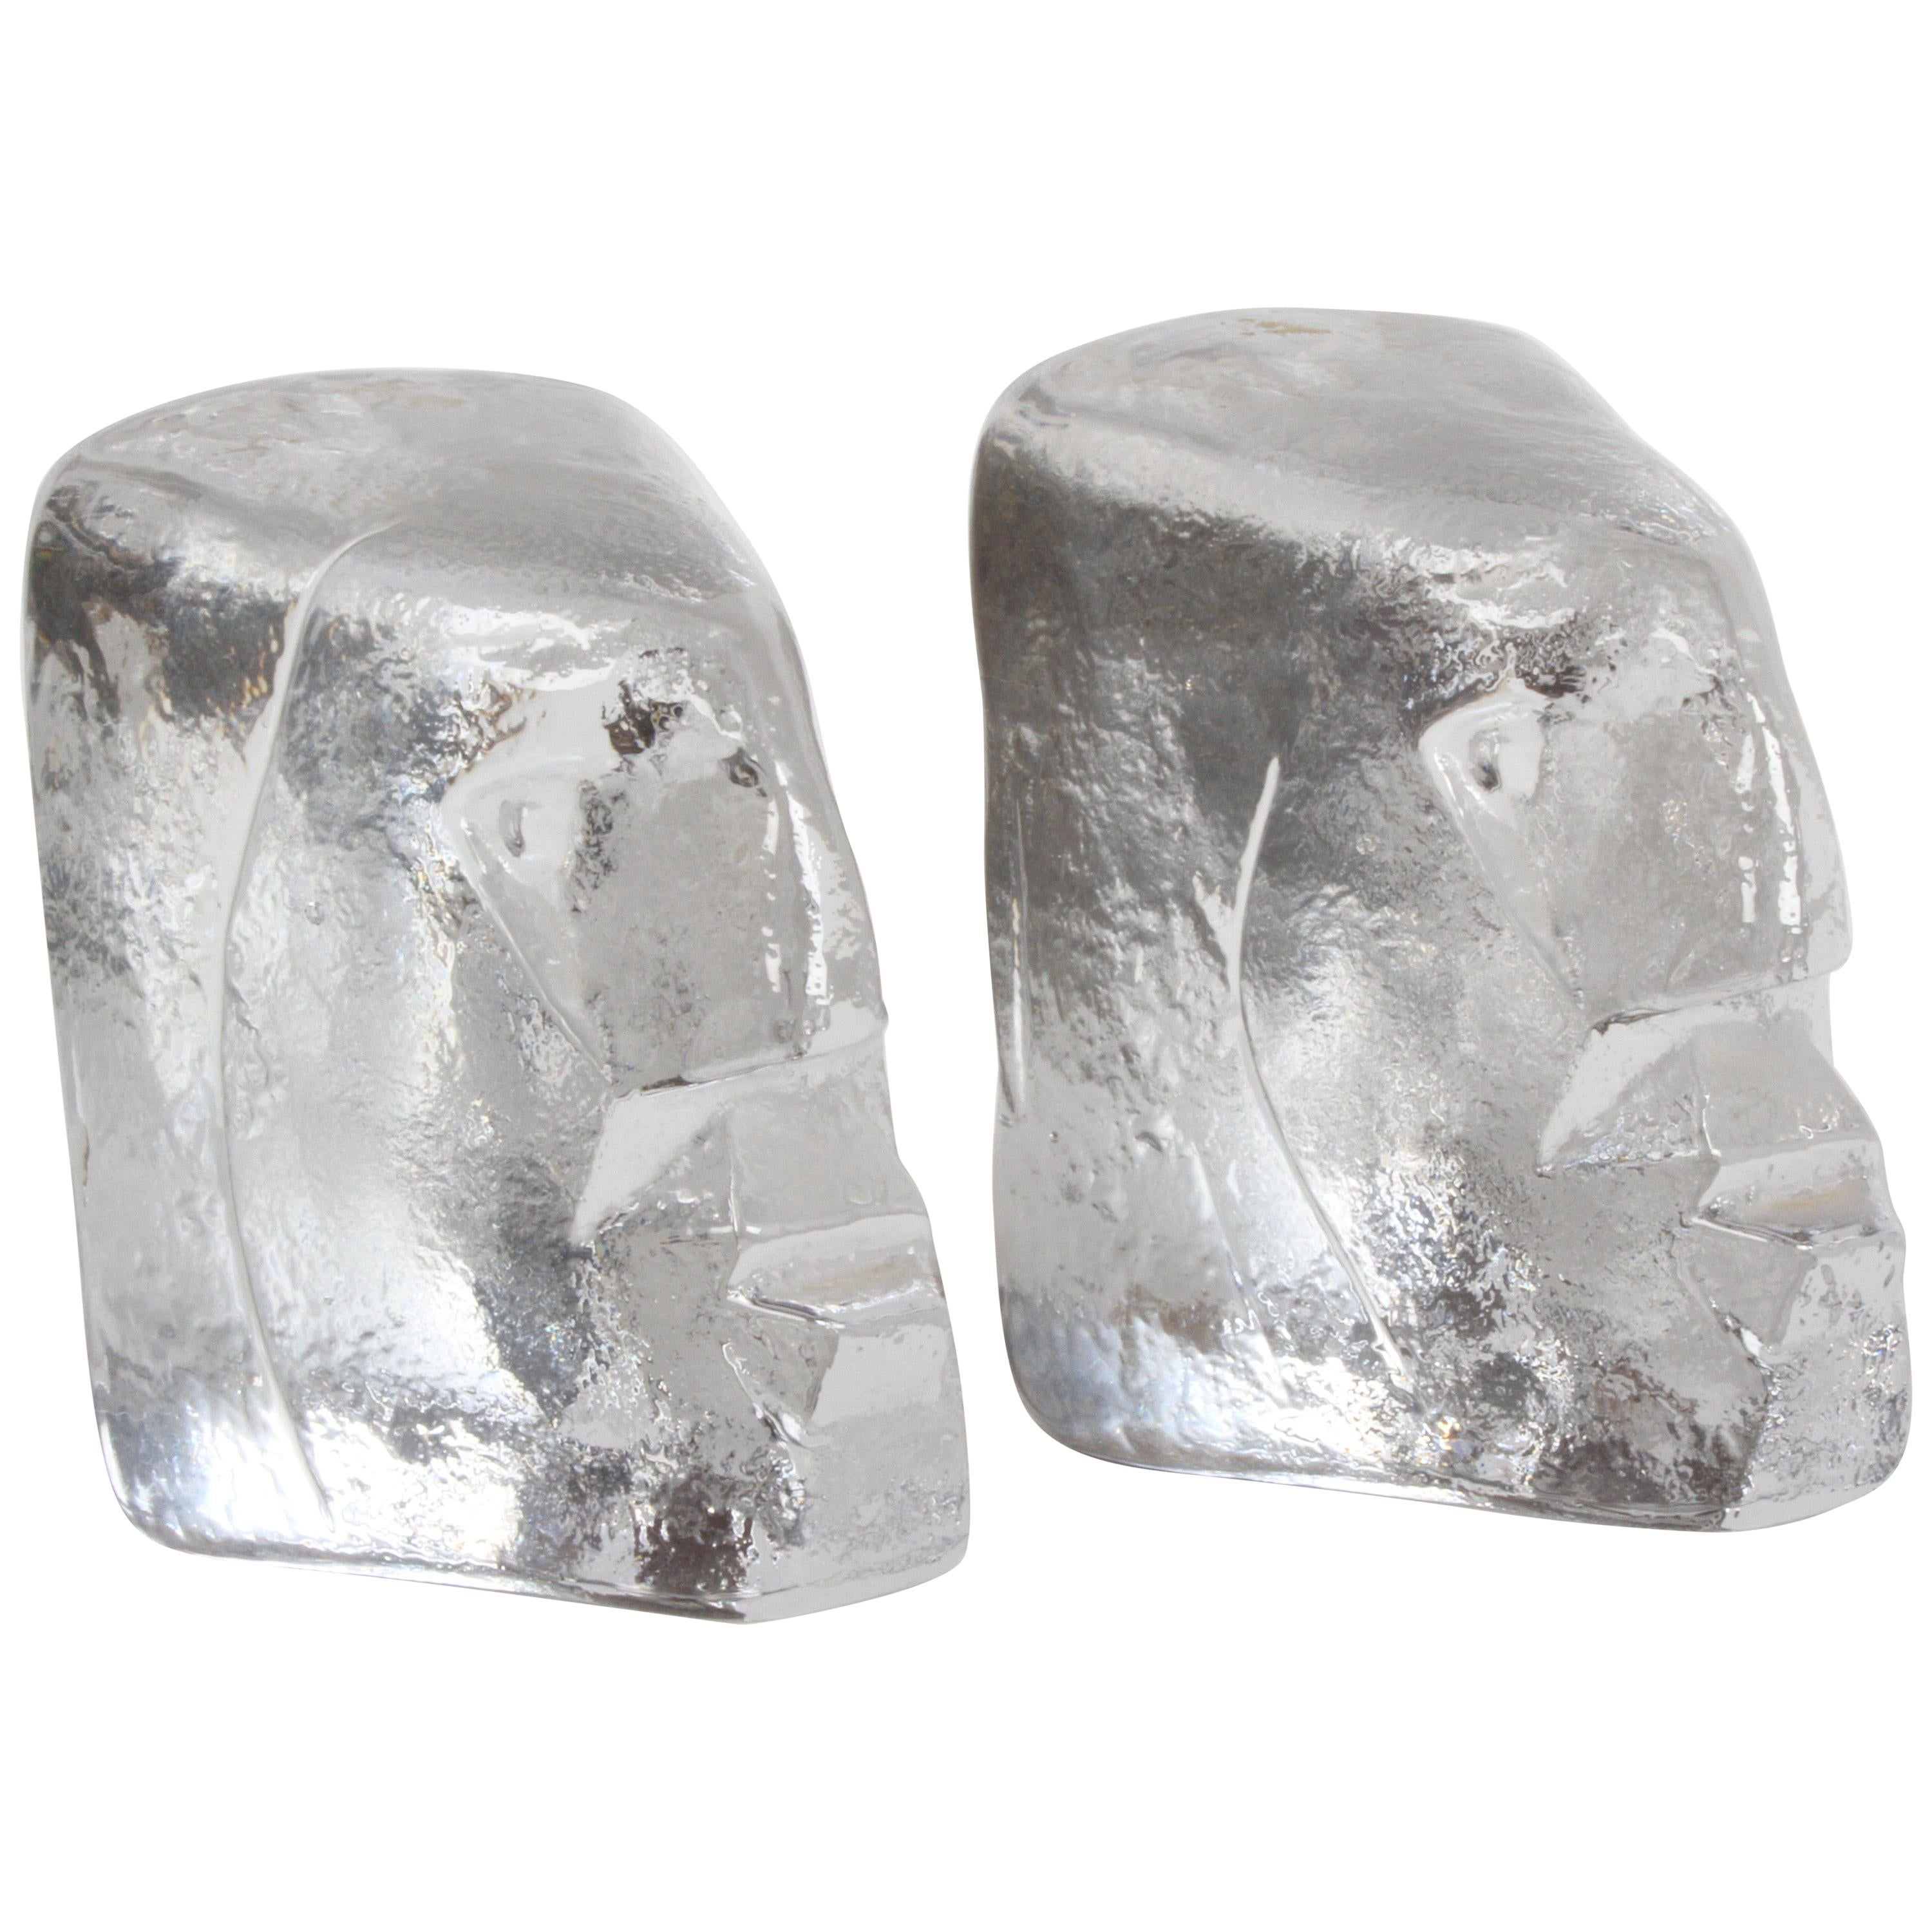 Pair of Glass Face Bookends or Sculptures by Erik Höglund, Sweden, 1960s